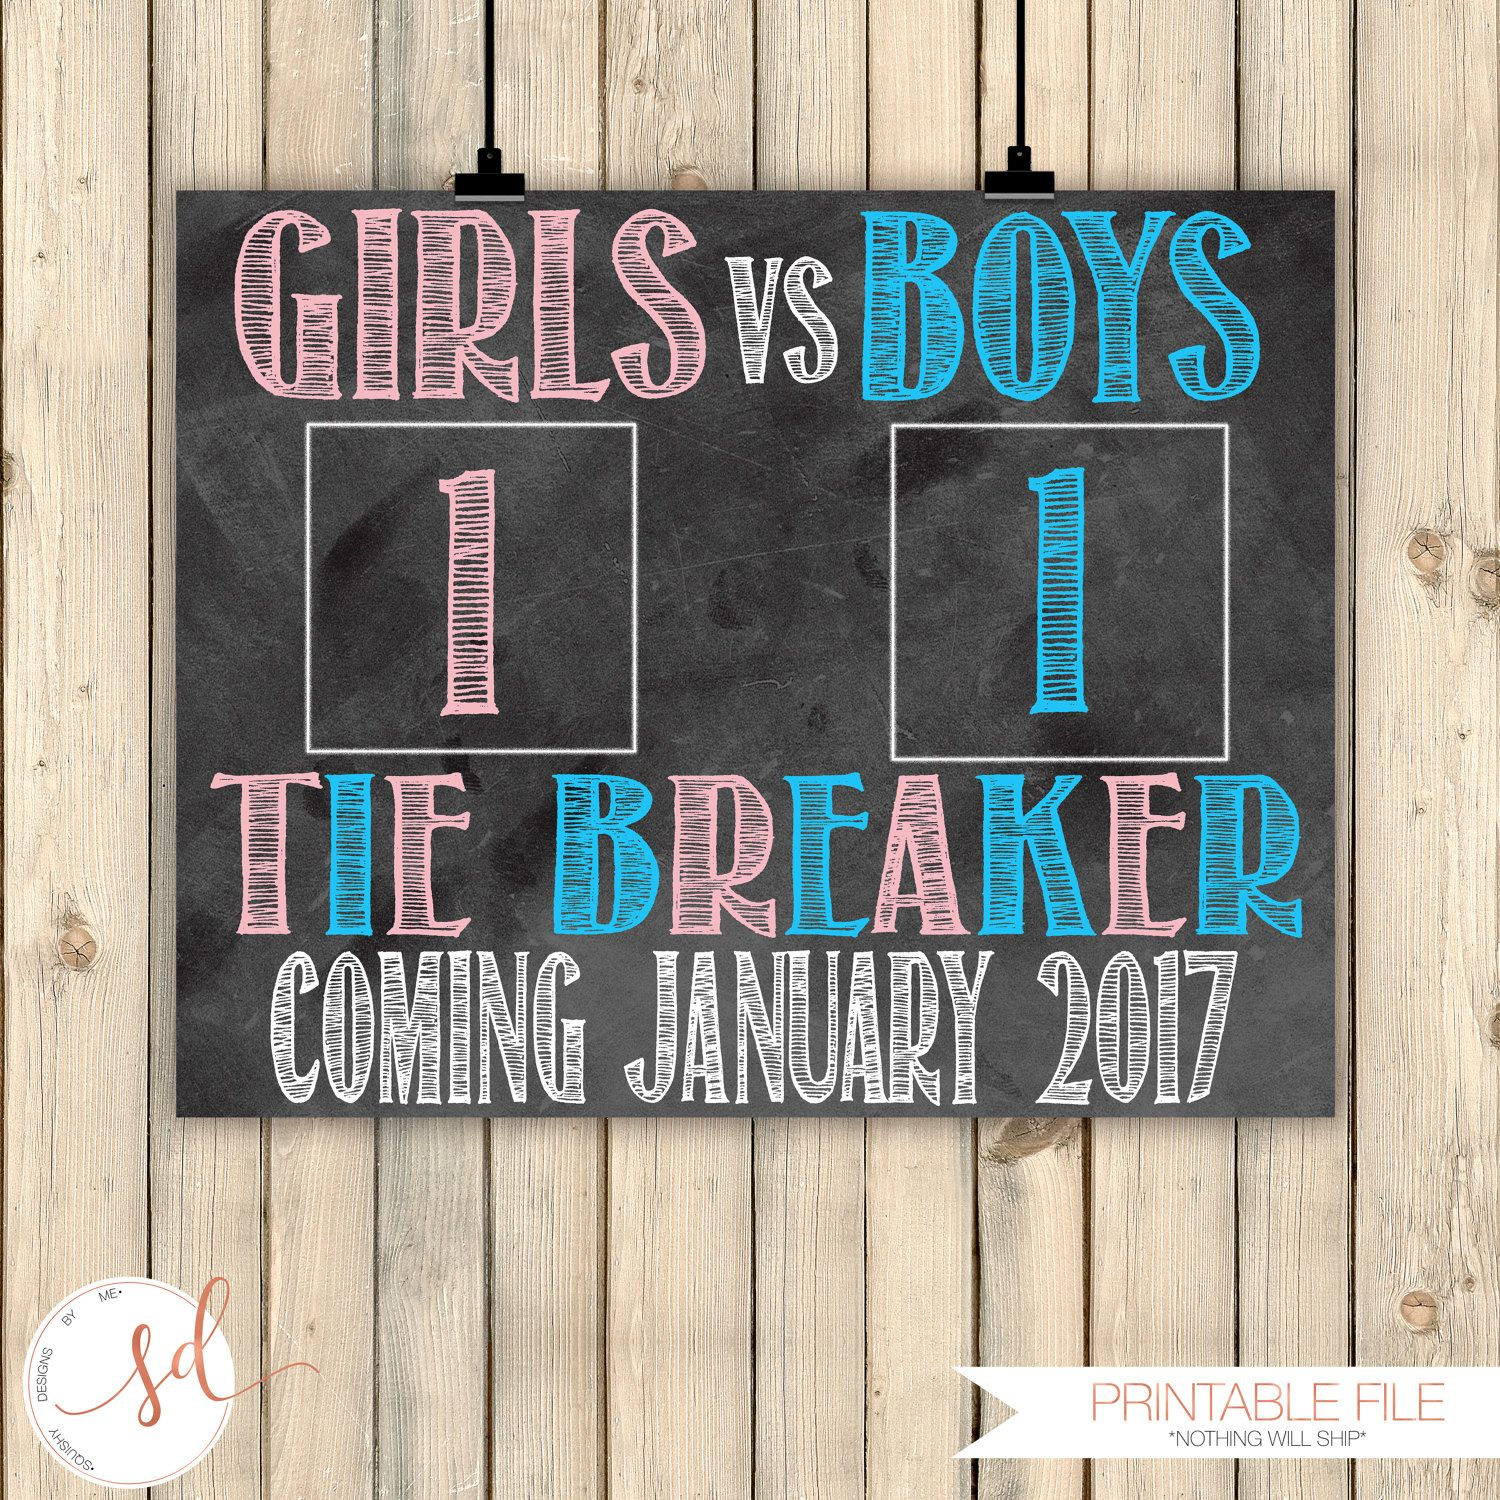 Tie Breaker Pregnancy Announcement Boys vs Girls New Baby Reveal – Baby Announcement Party